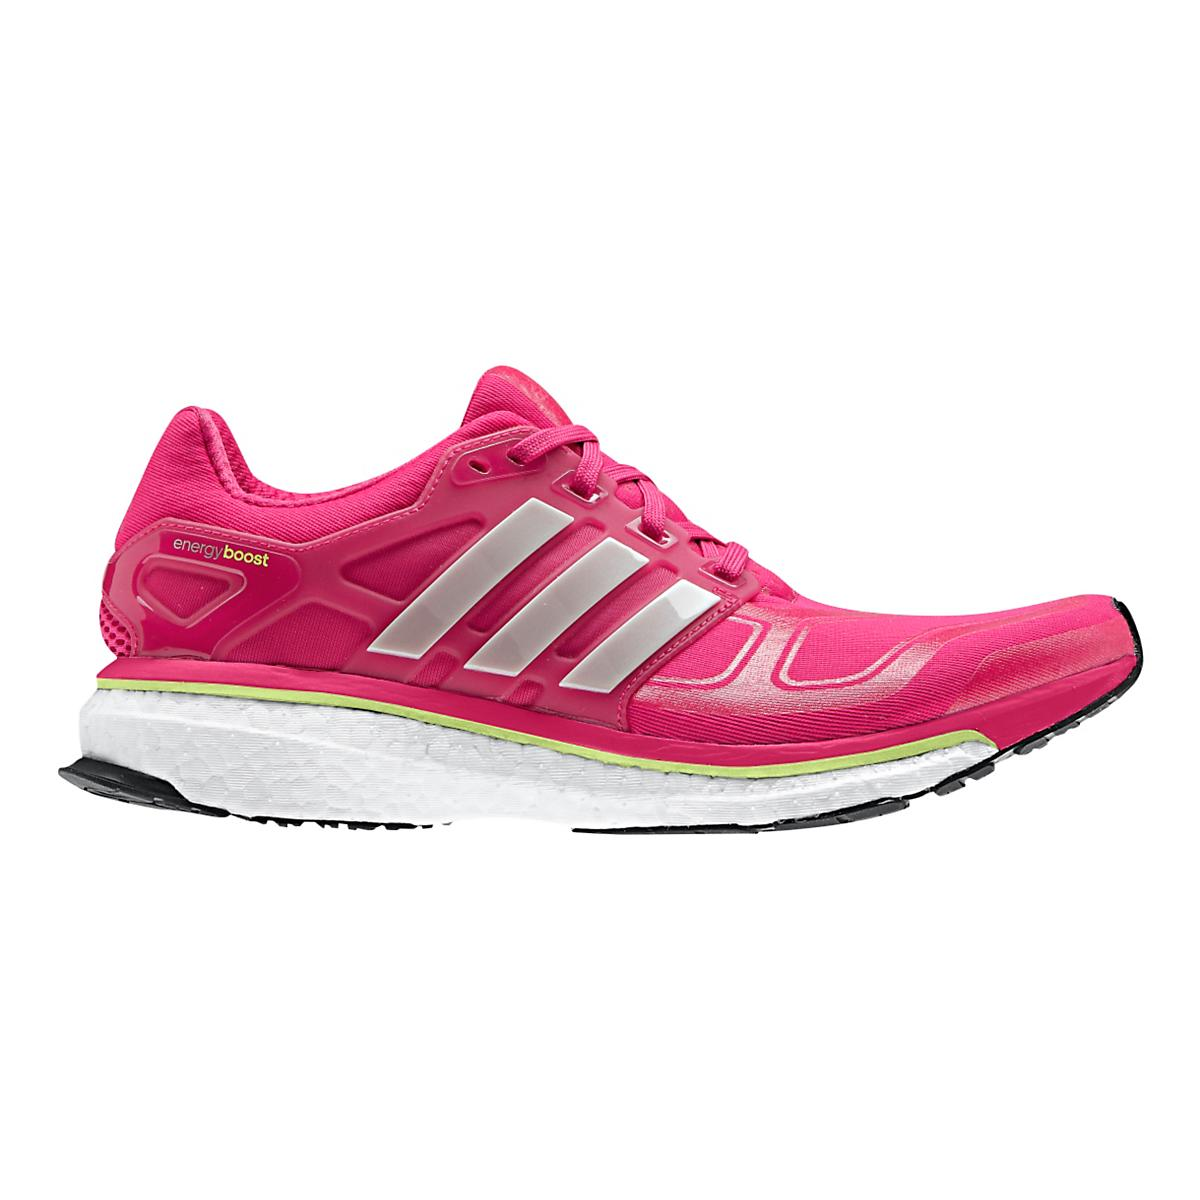 fca973fd0 Womens adidas Energy Boost 2 Running Shoe at Road Runner Sports